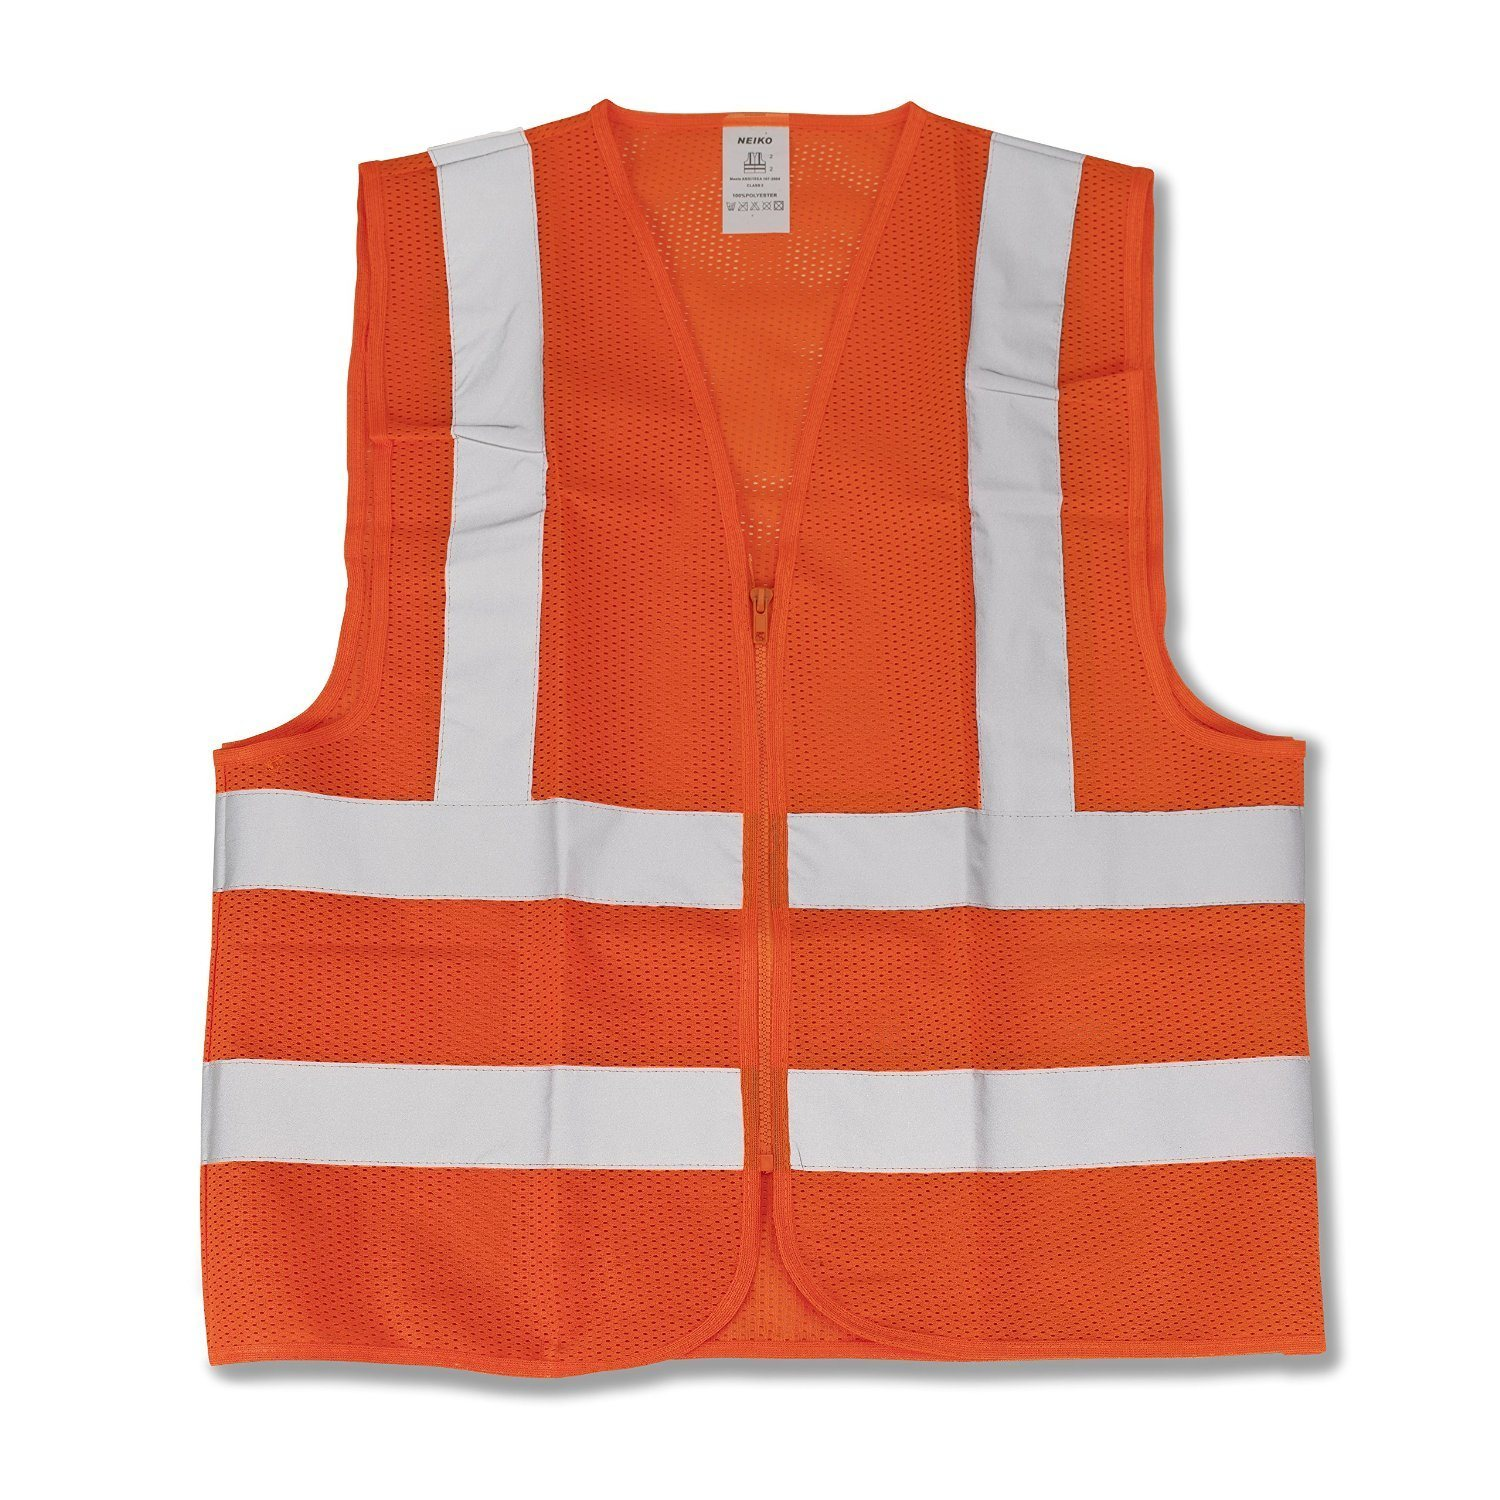 Neiko 53944A High Visibility Neon Orange Safety Vest with Reflective Strips